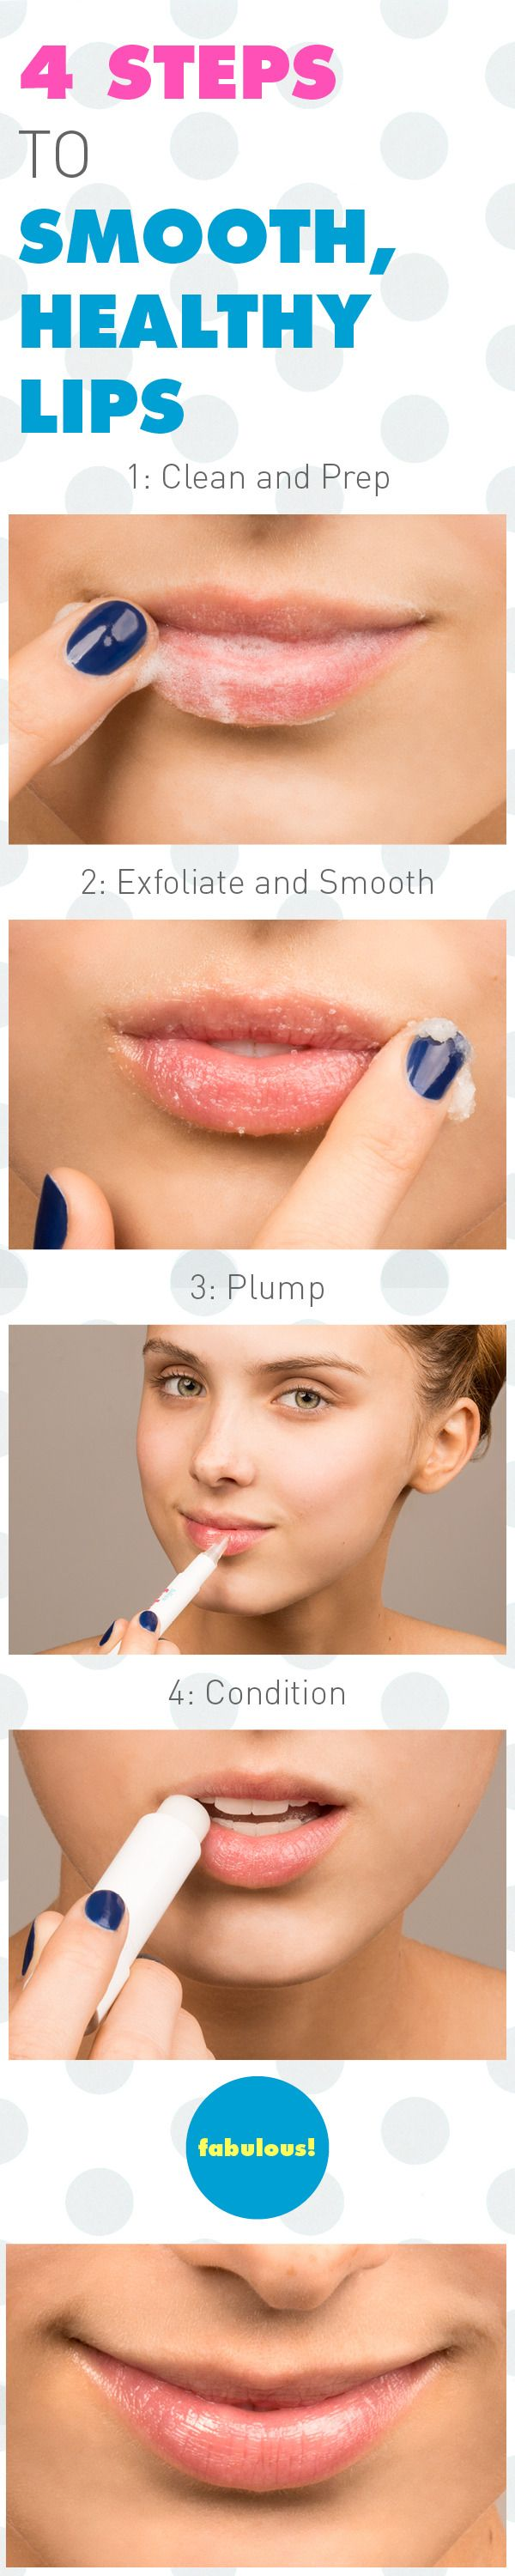 4 Steps to Smooth, Healthy Lips